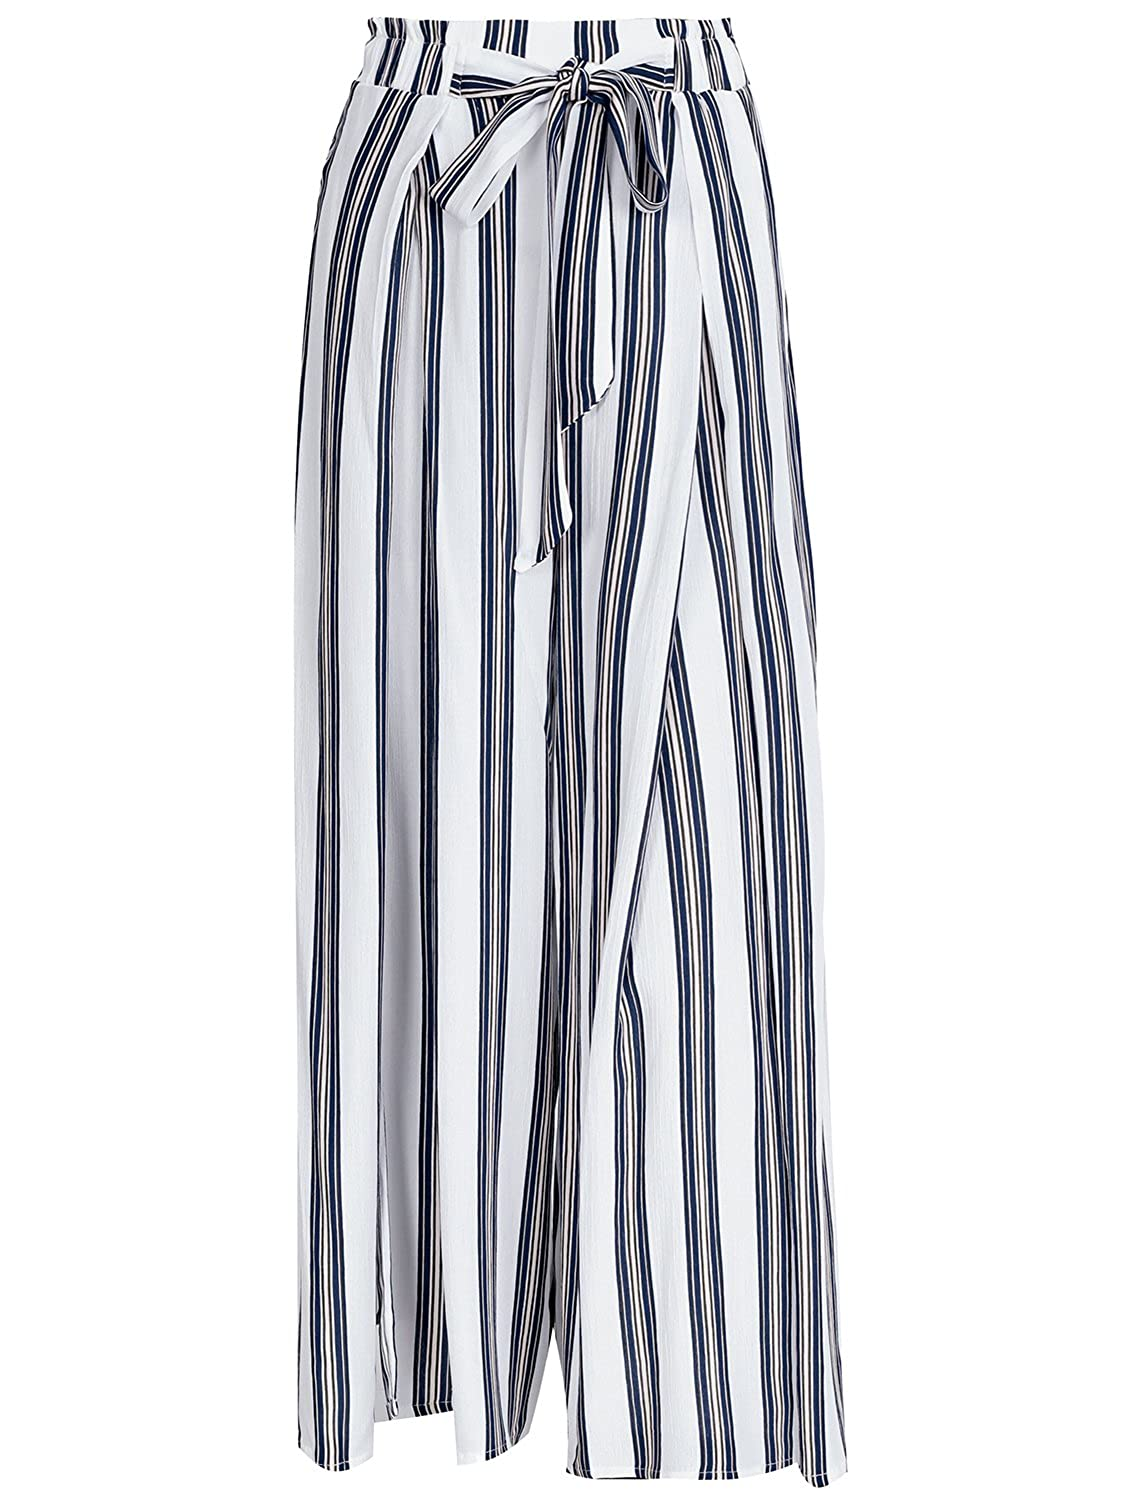 1930s Wide Leg Pants and Beach Pajamas Simplee Womens Elegant Striped Split High Waisted Belted Flowy Wide Leg Pants $22.99 AT vintagedancer.com